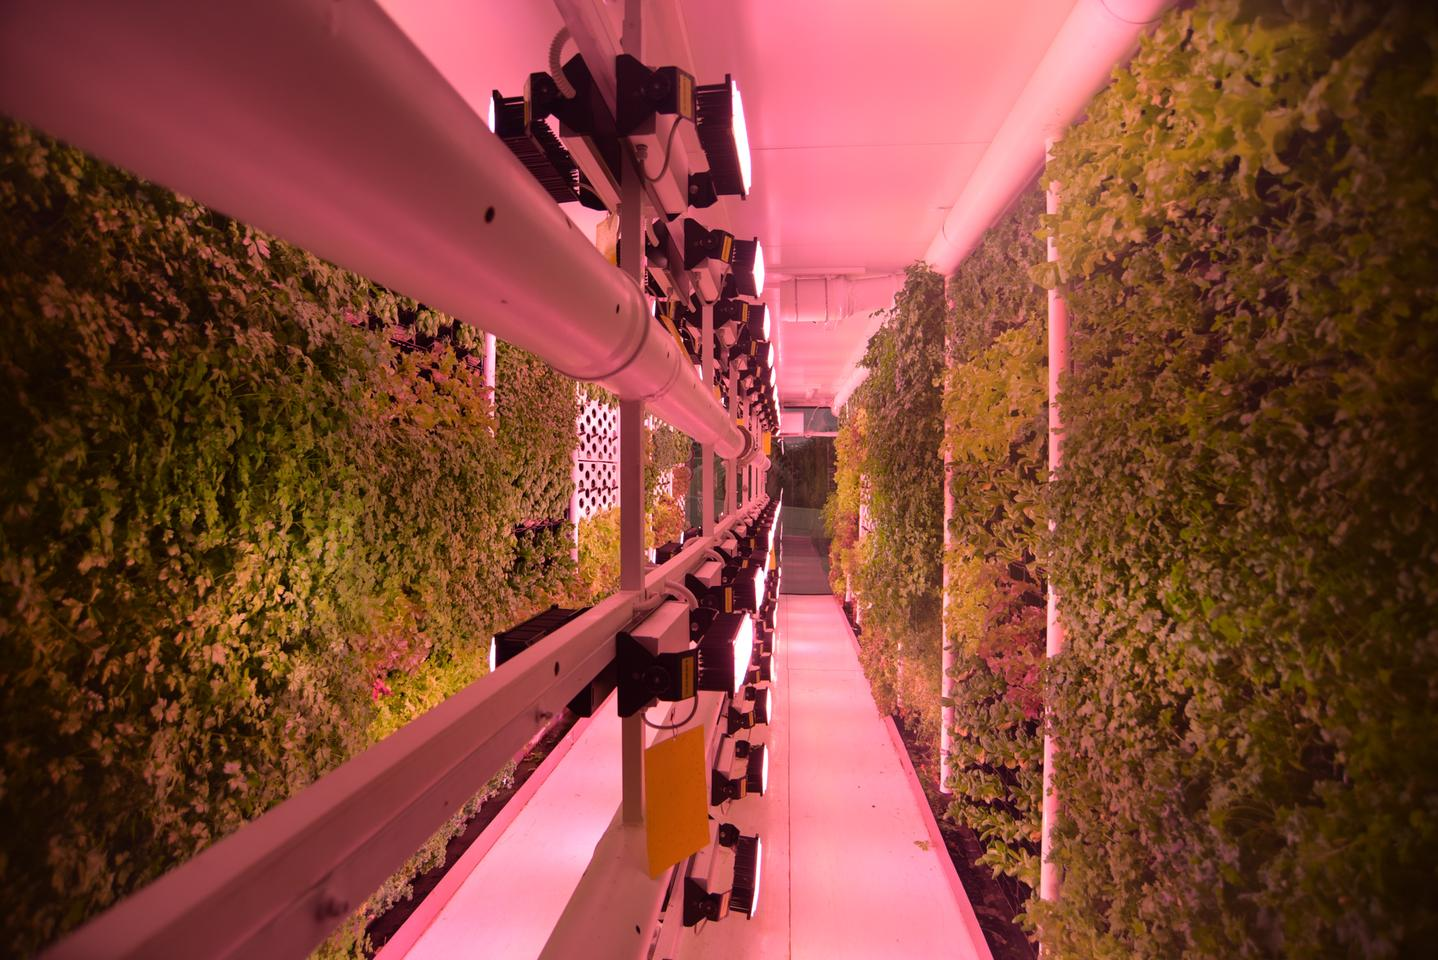 Vertical Field's urban farms grow walls of veggies inside recycled shipping containers